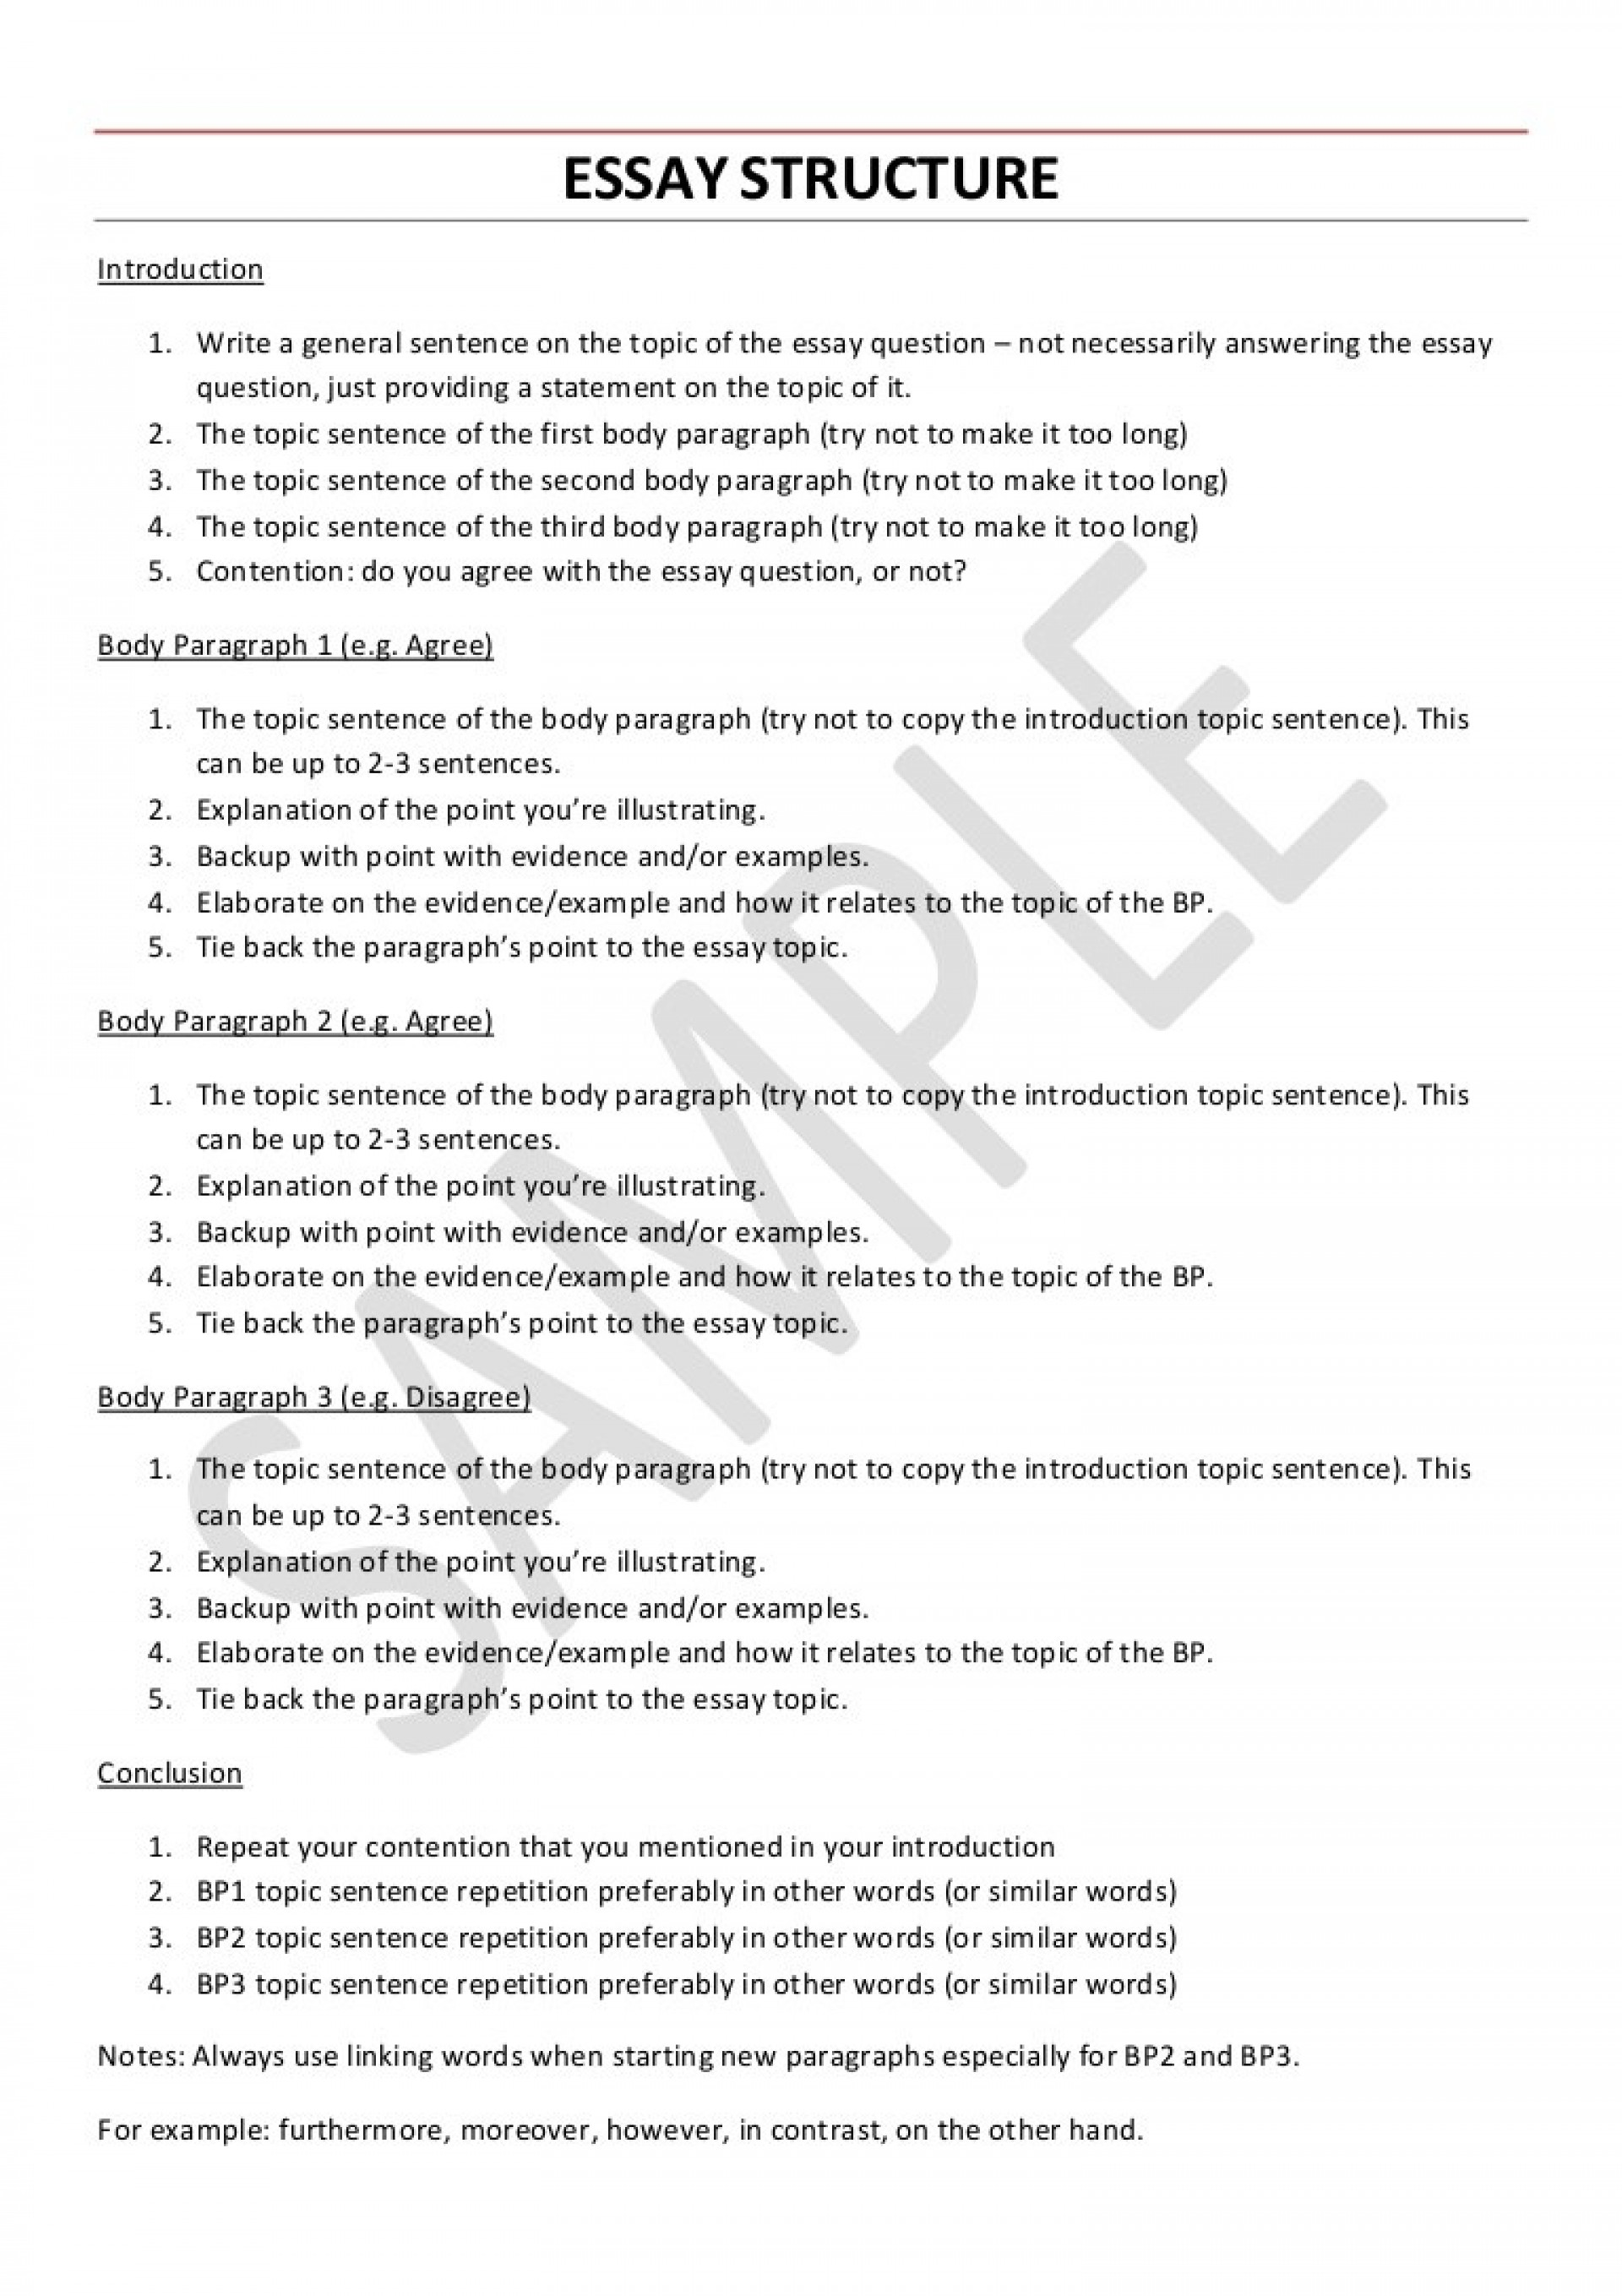 021 Good Topic For College English Research Paper Essaystructure Phpapp02 Thumbnail Formidable 1920